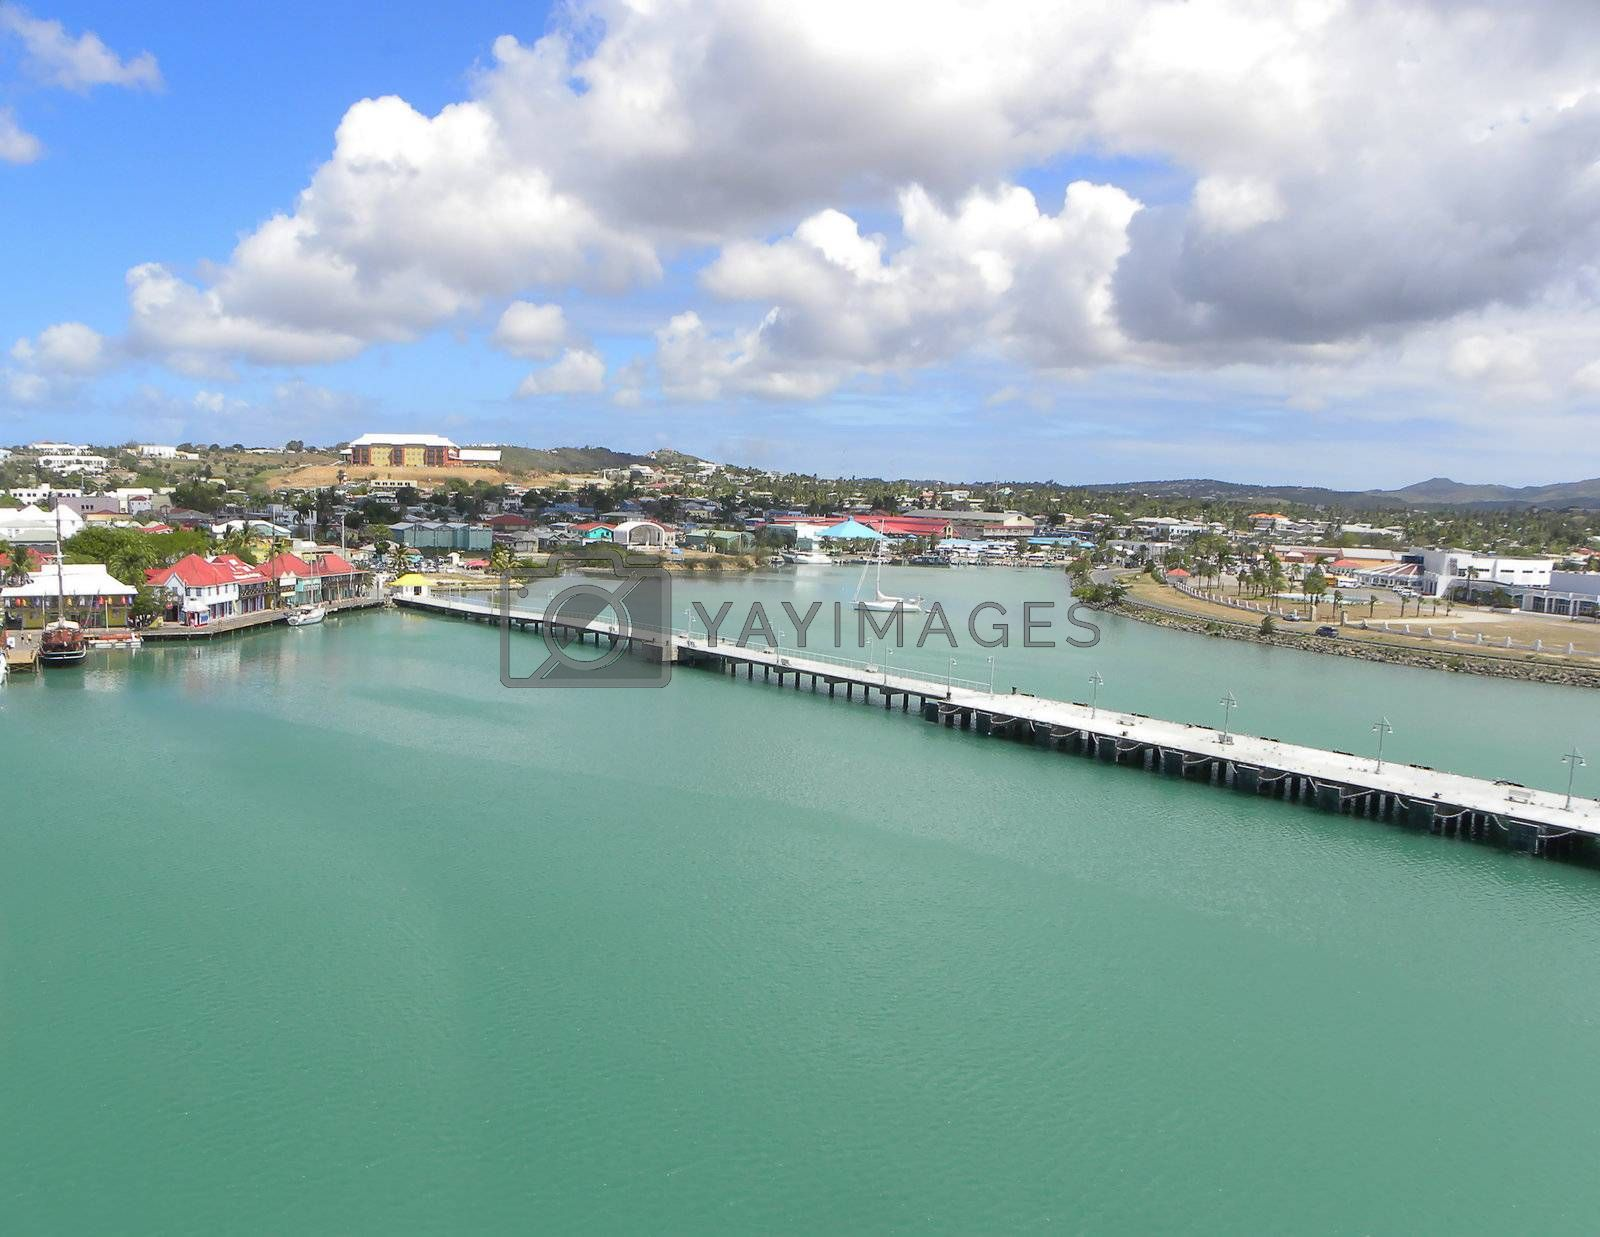 view of the port of Antigua in the Caribbean islands